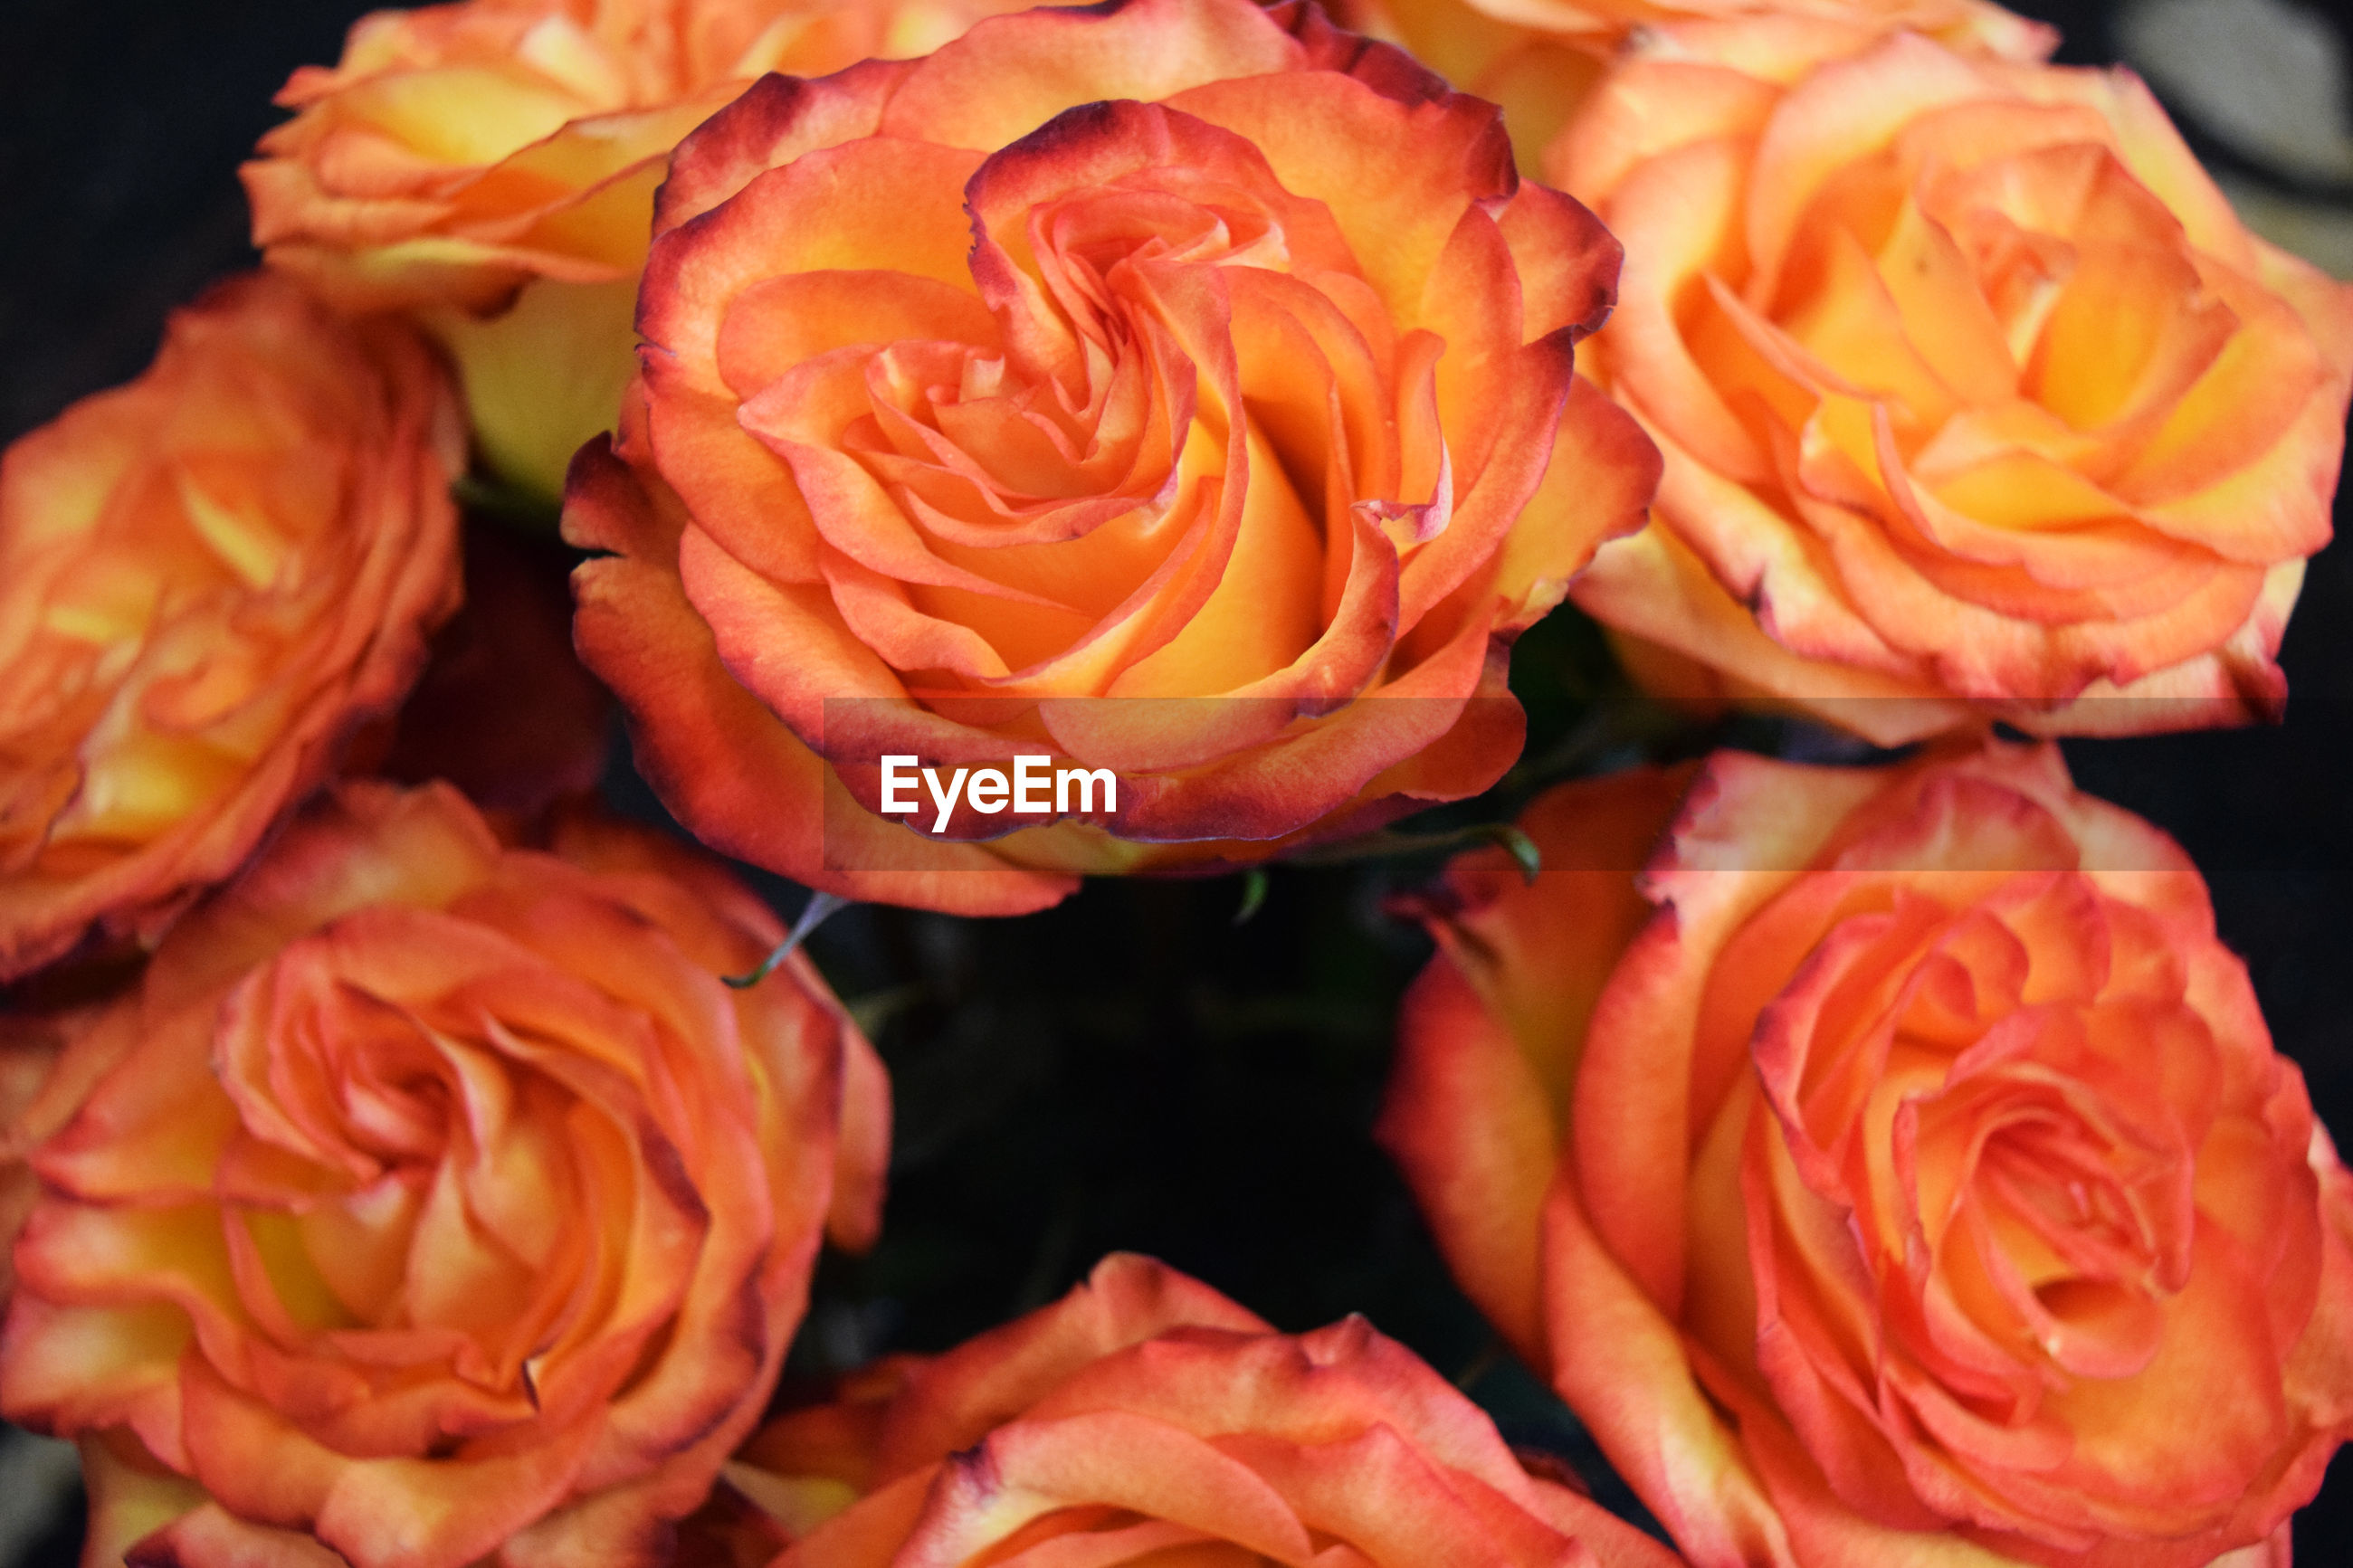 Close-up of orange roses blooming outdoors